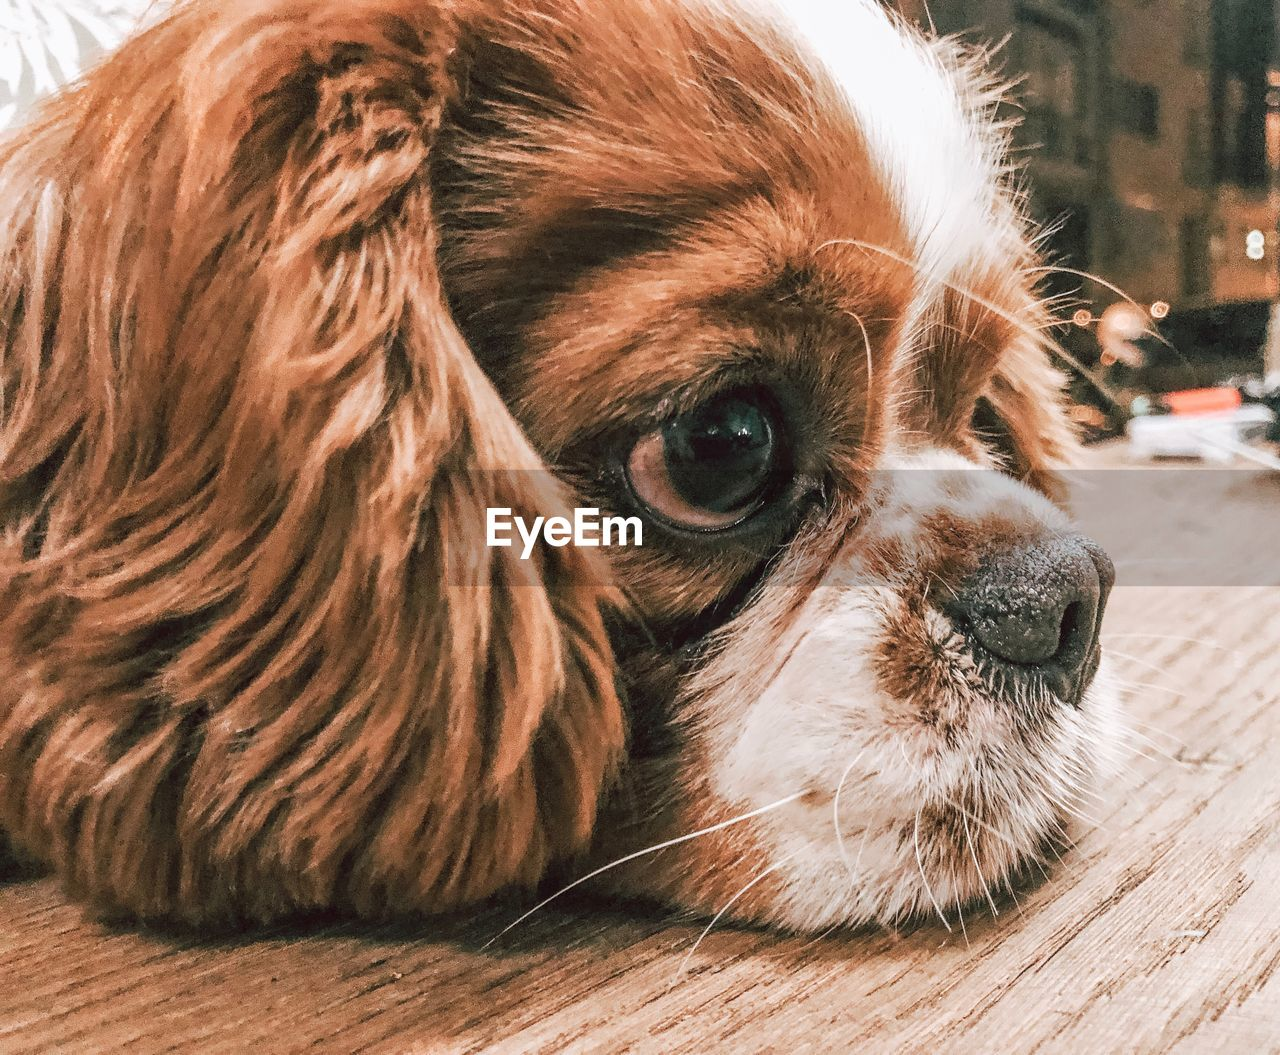 one animal, mammal, domestic, animal, pets, animal themes, domestic animals, dog, canine, vertebrate, lap dog, close-up, focus on foreground, portrait, animal body part, animal head, looking, no people, relaxation, looking away, small, animal eye